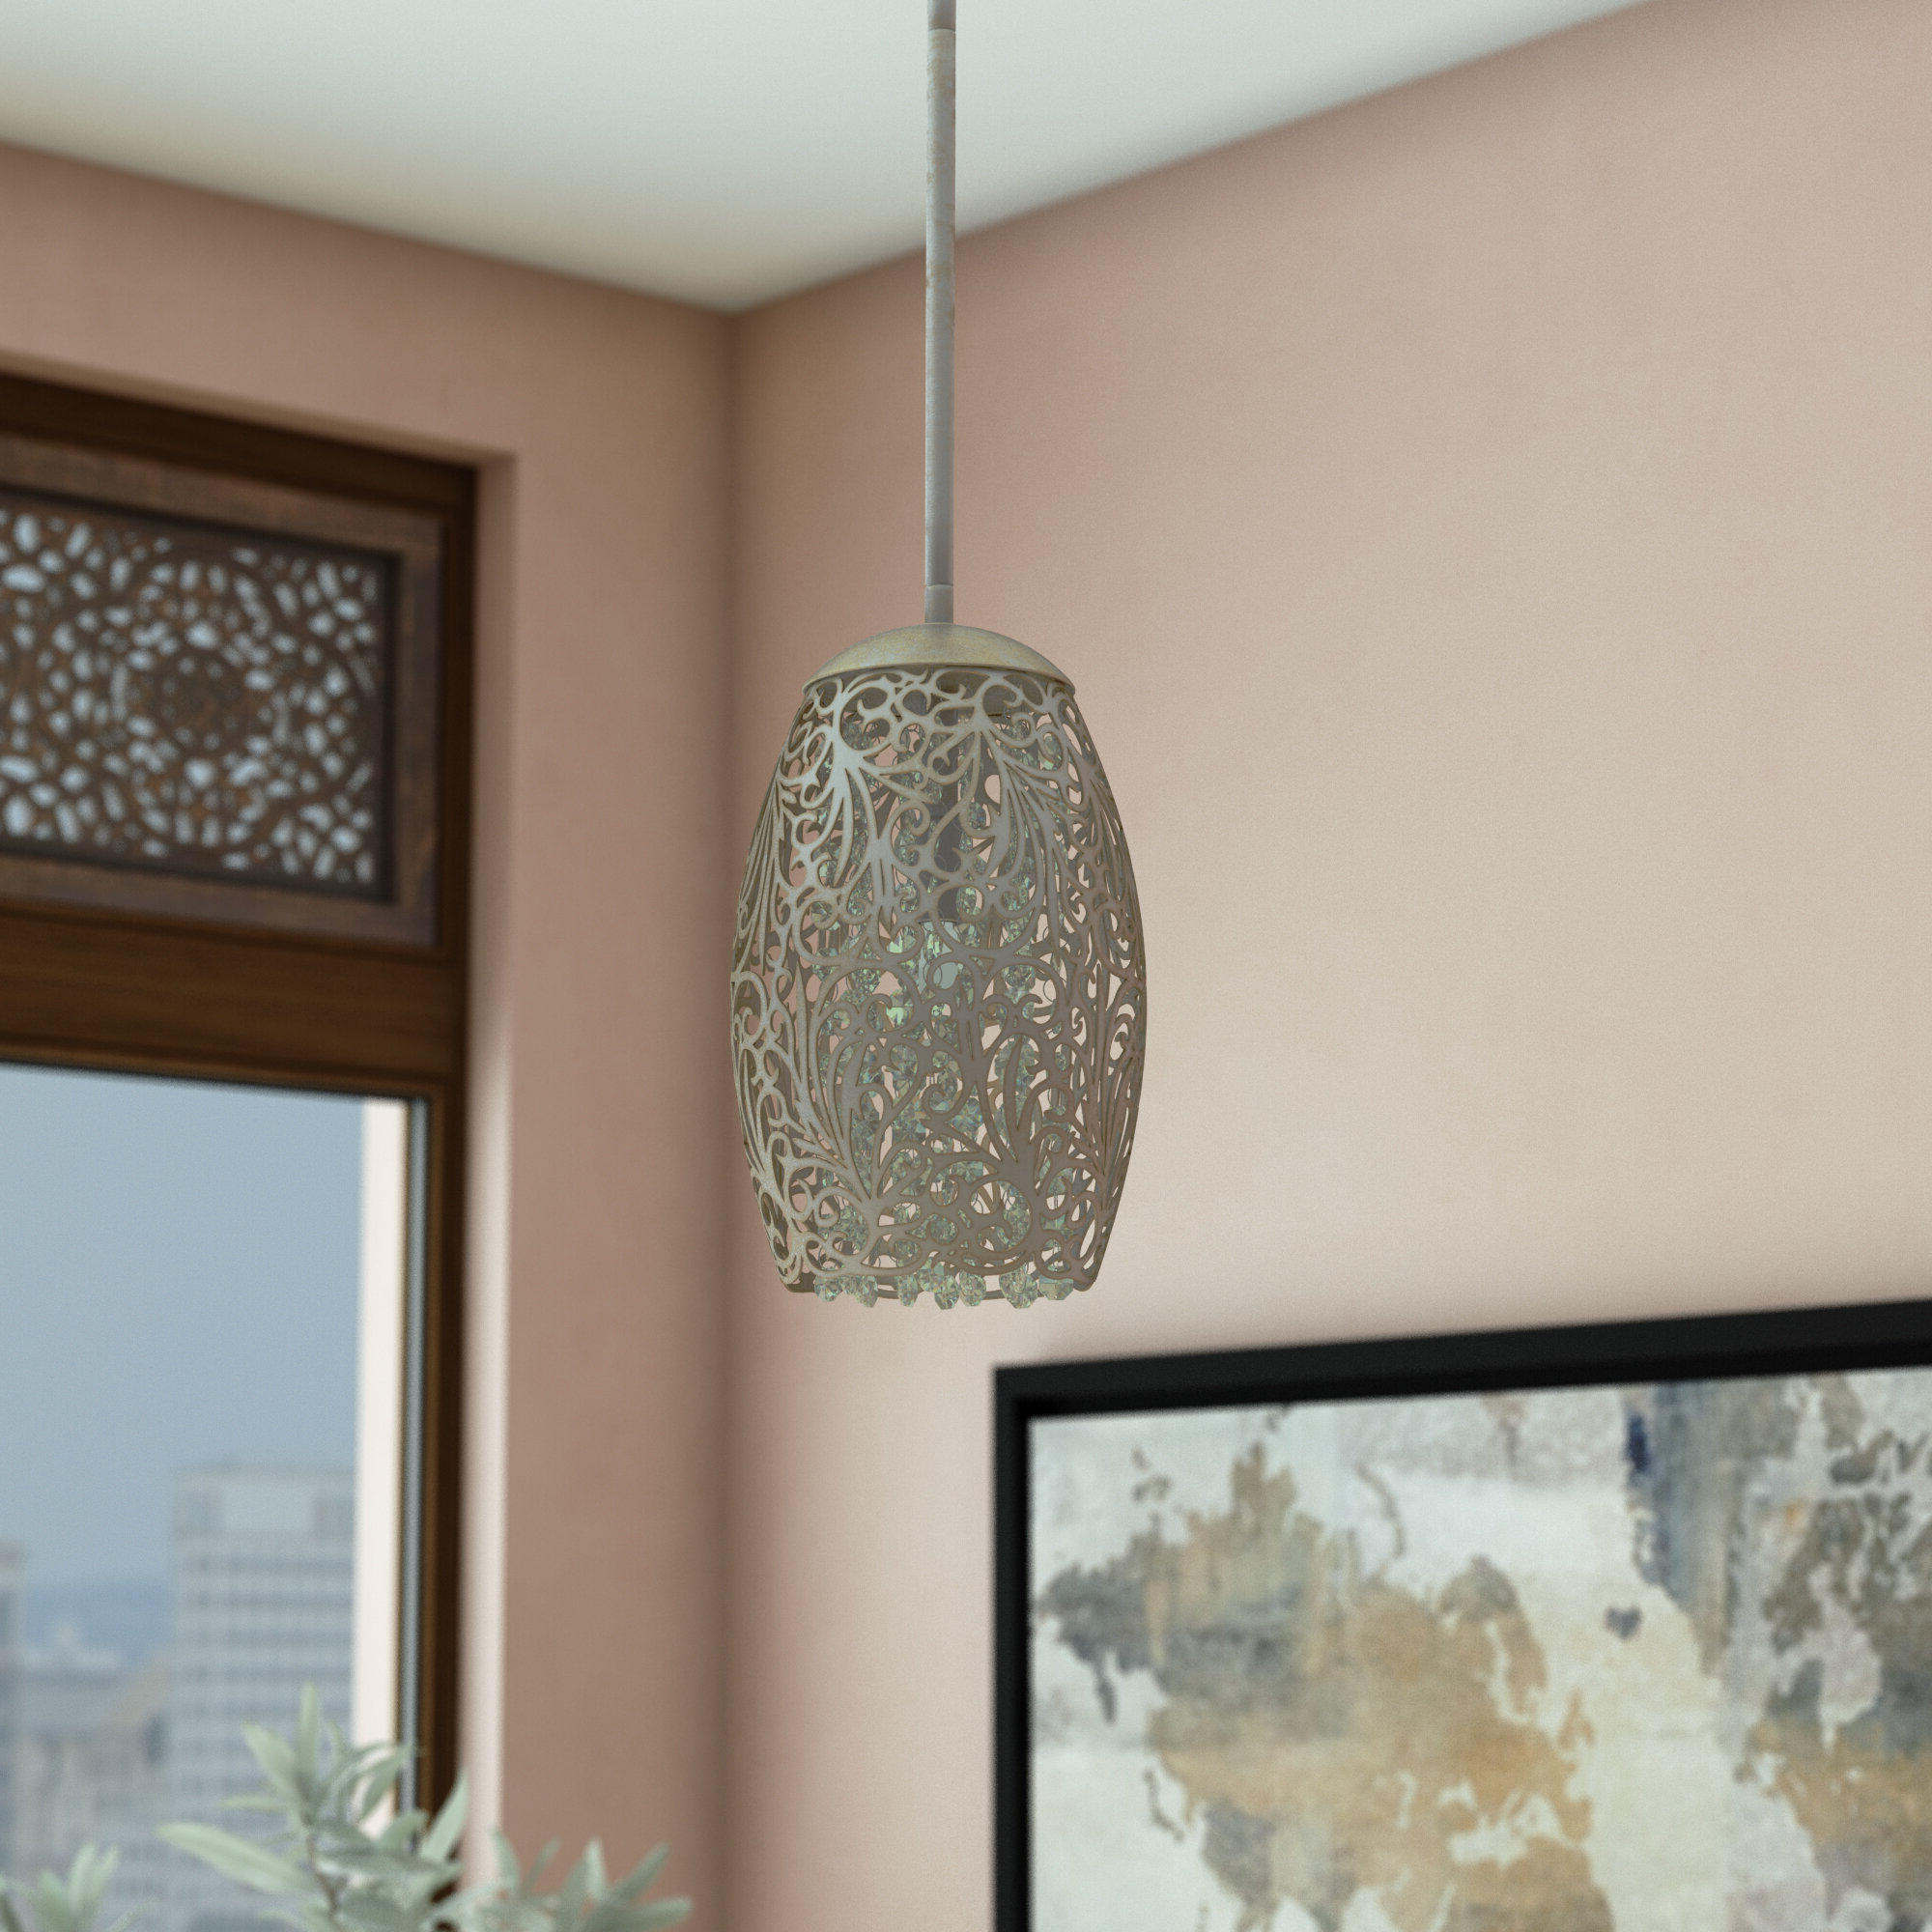 Kraker 1 Light Single Cylinder Pendant Intended For Favorite Devereaux 1 Light Single Globe Pendants (View 10 of 20)